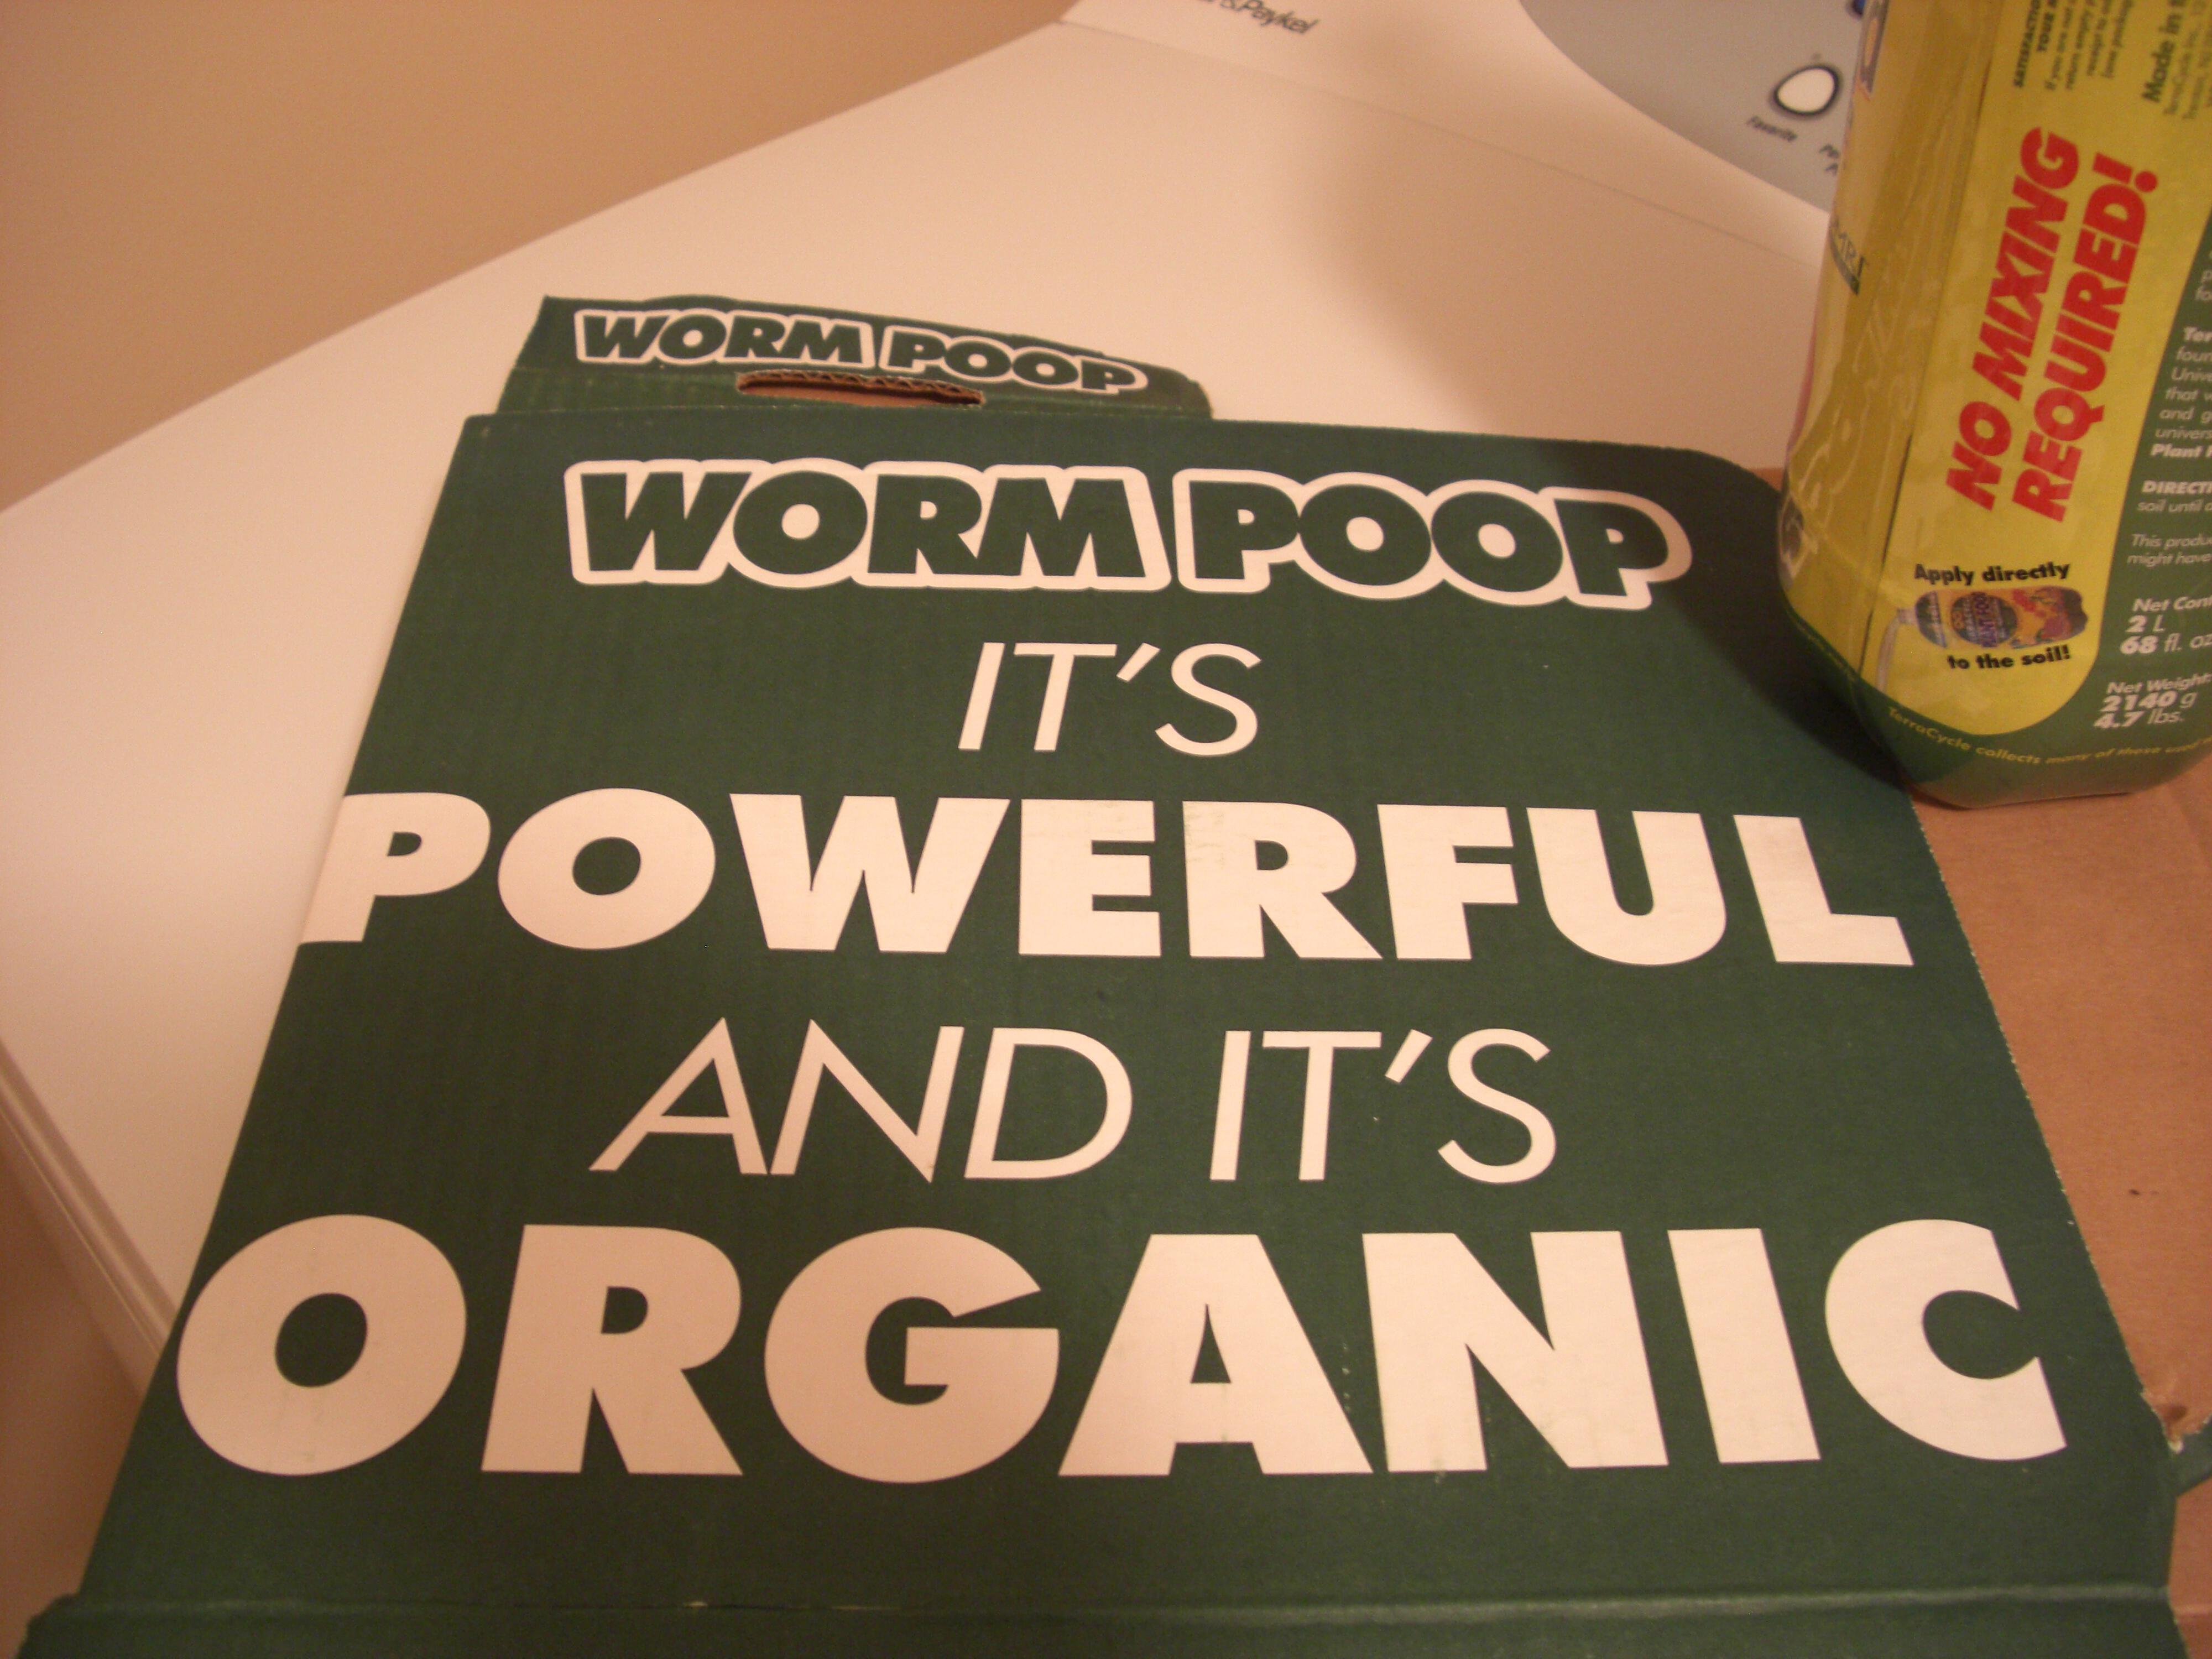 Worm poop it's powerful and it's organic